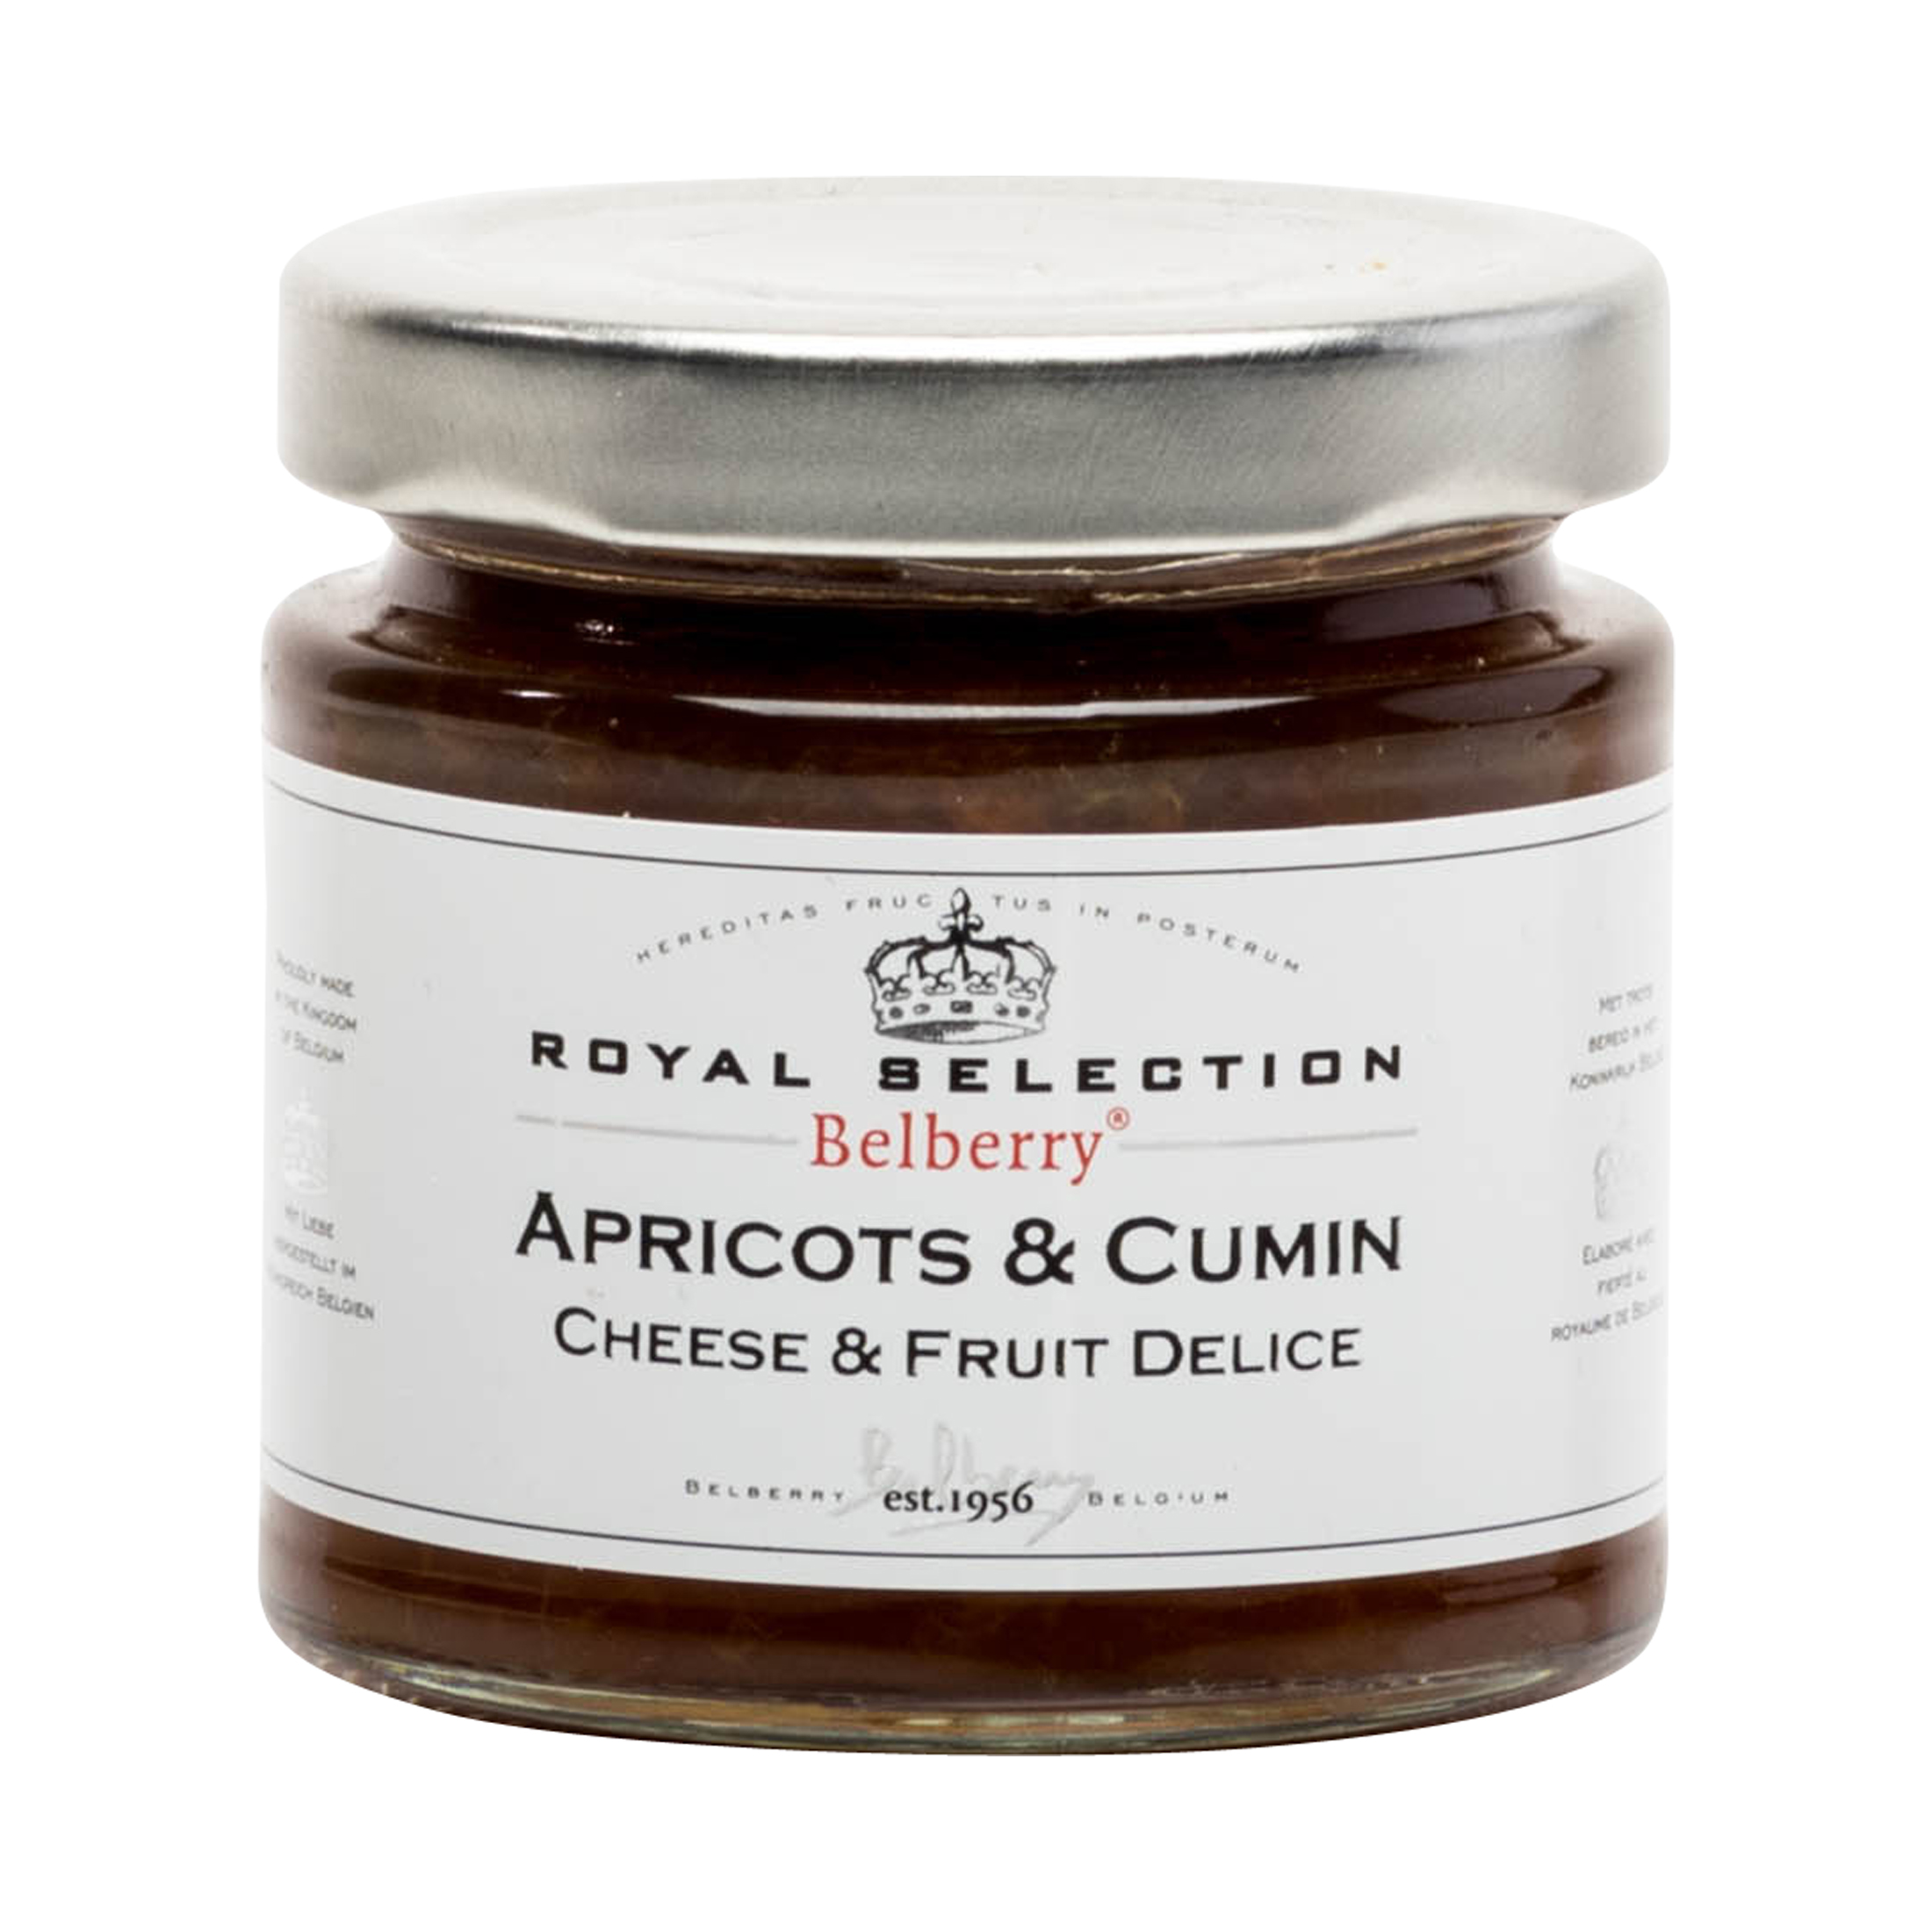 APRICOTS & CUMIN ROYAL SELECTION